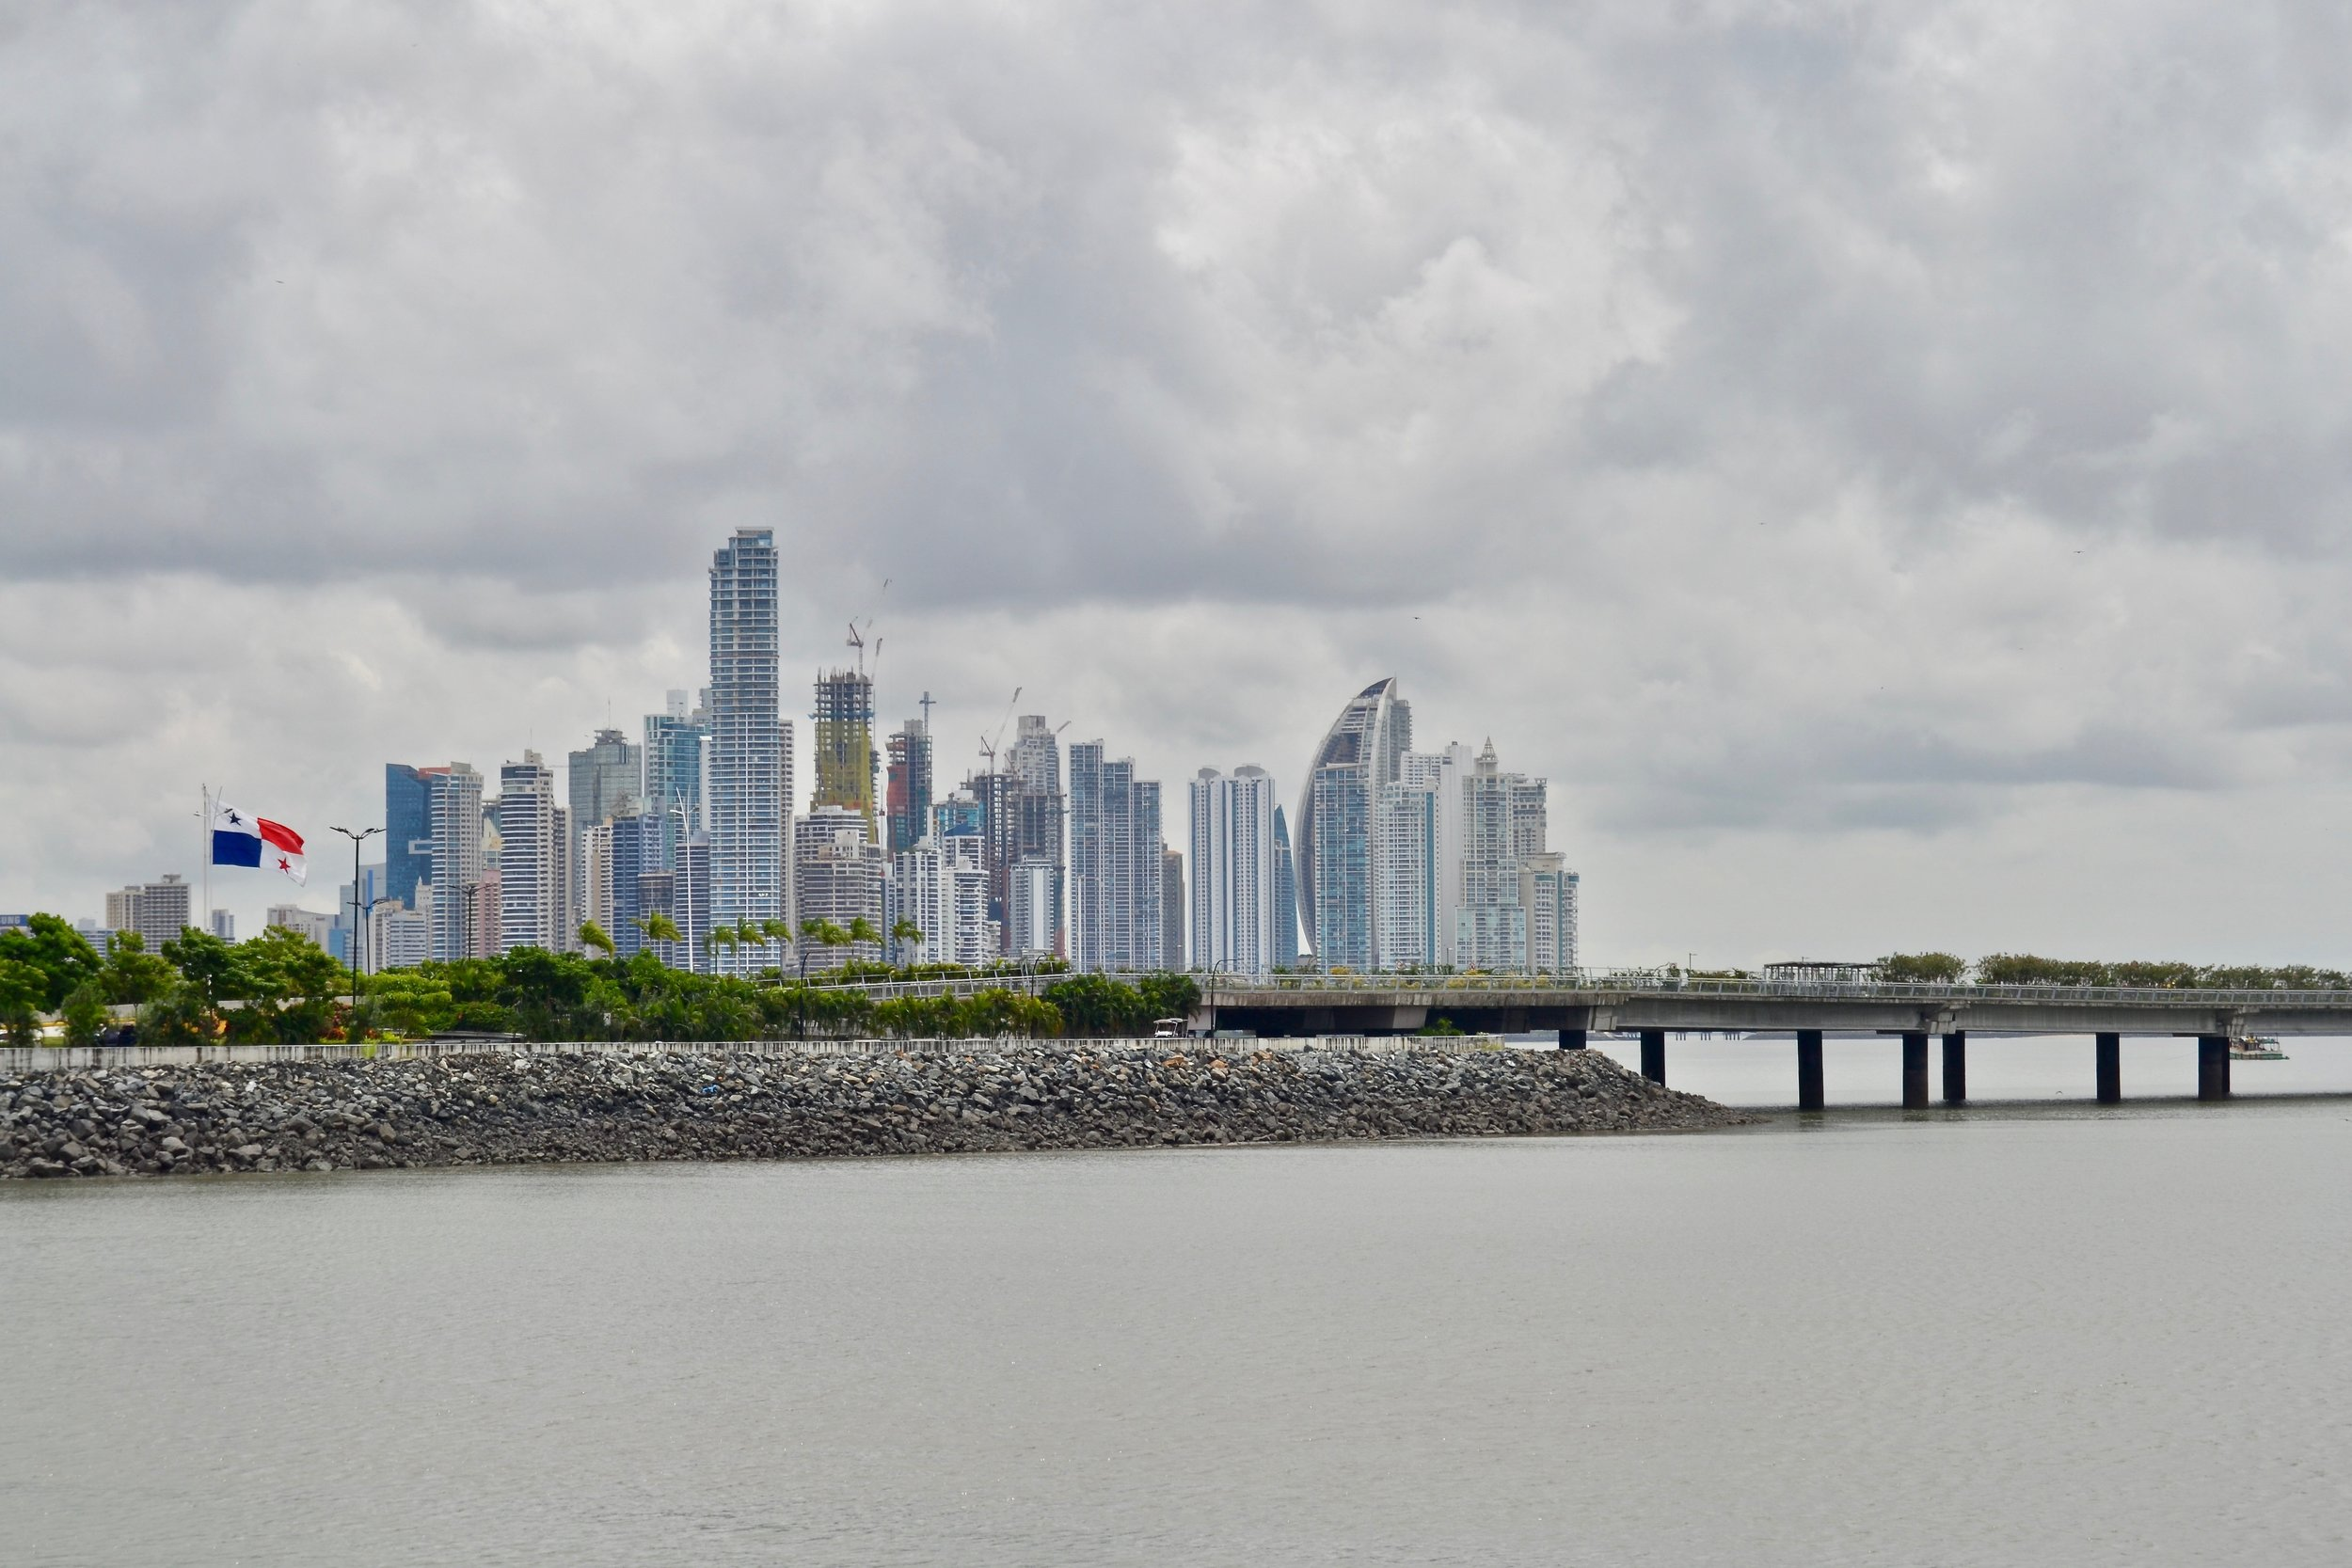 A beautiful view of a small part of the Panama City skyline